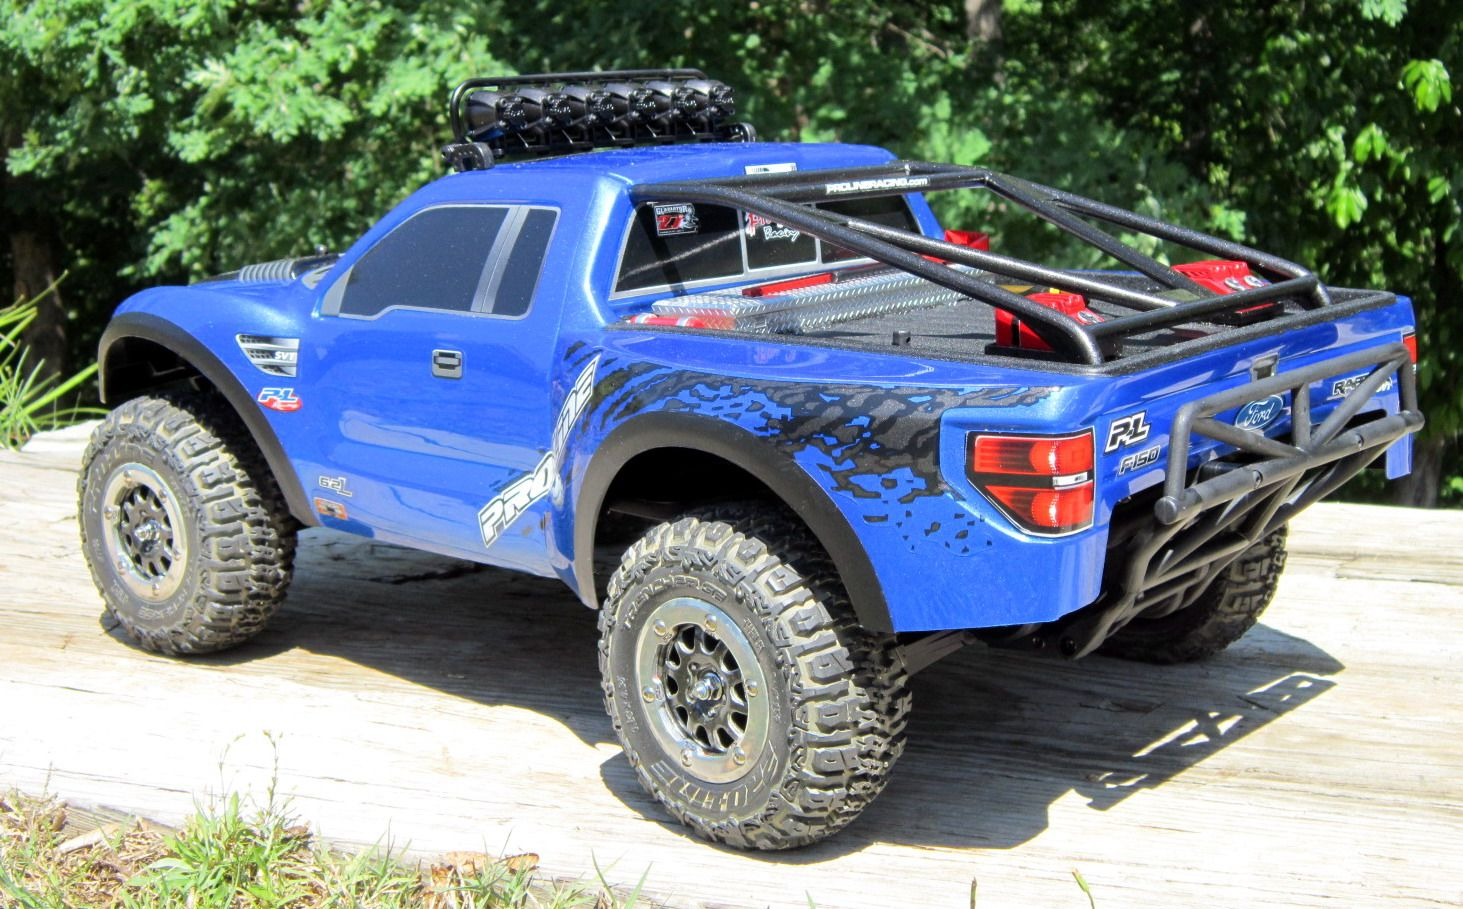 Traxxas Slash Ford Raptor Gadgets Cars Rc Vehicles Screensaver Used For Sale